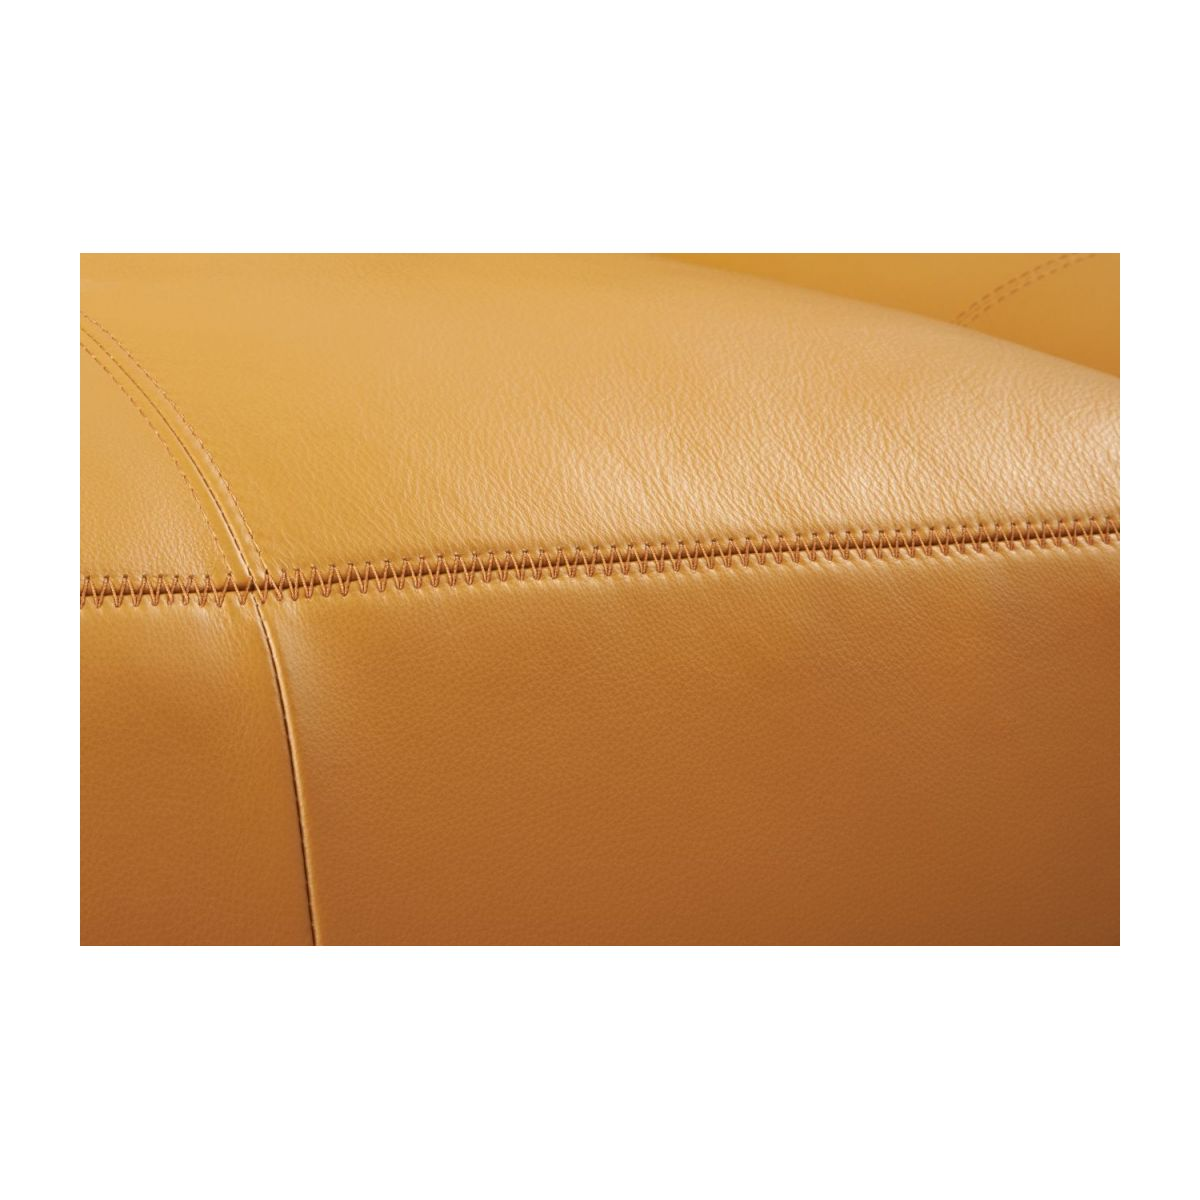 3 seater sofa in Savoy semi-aniline leather, cognac n°11